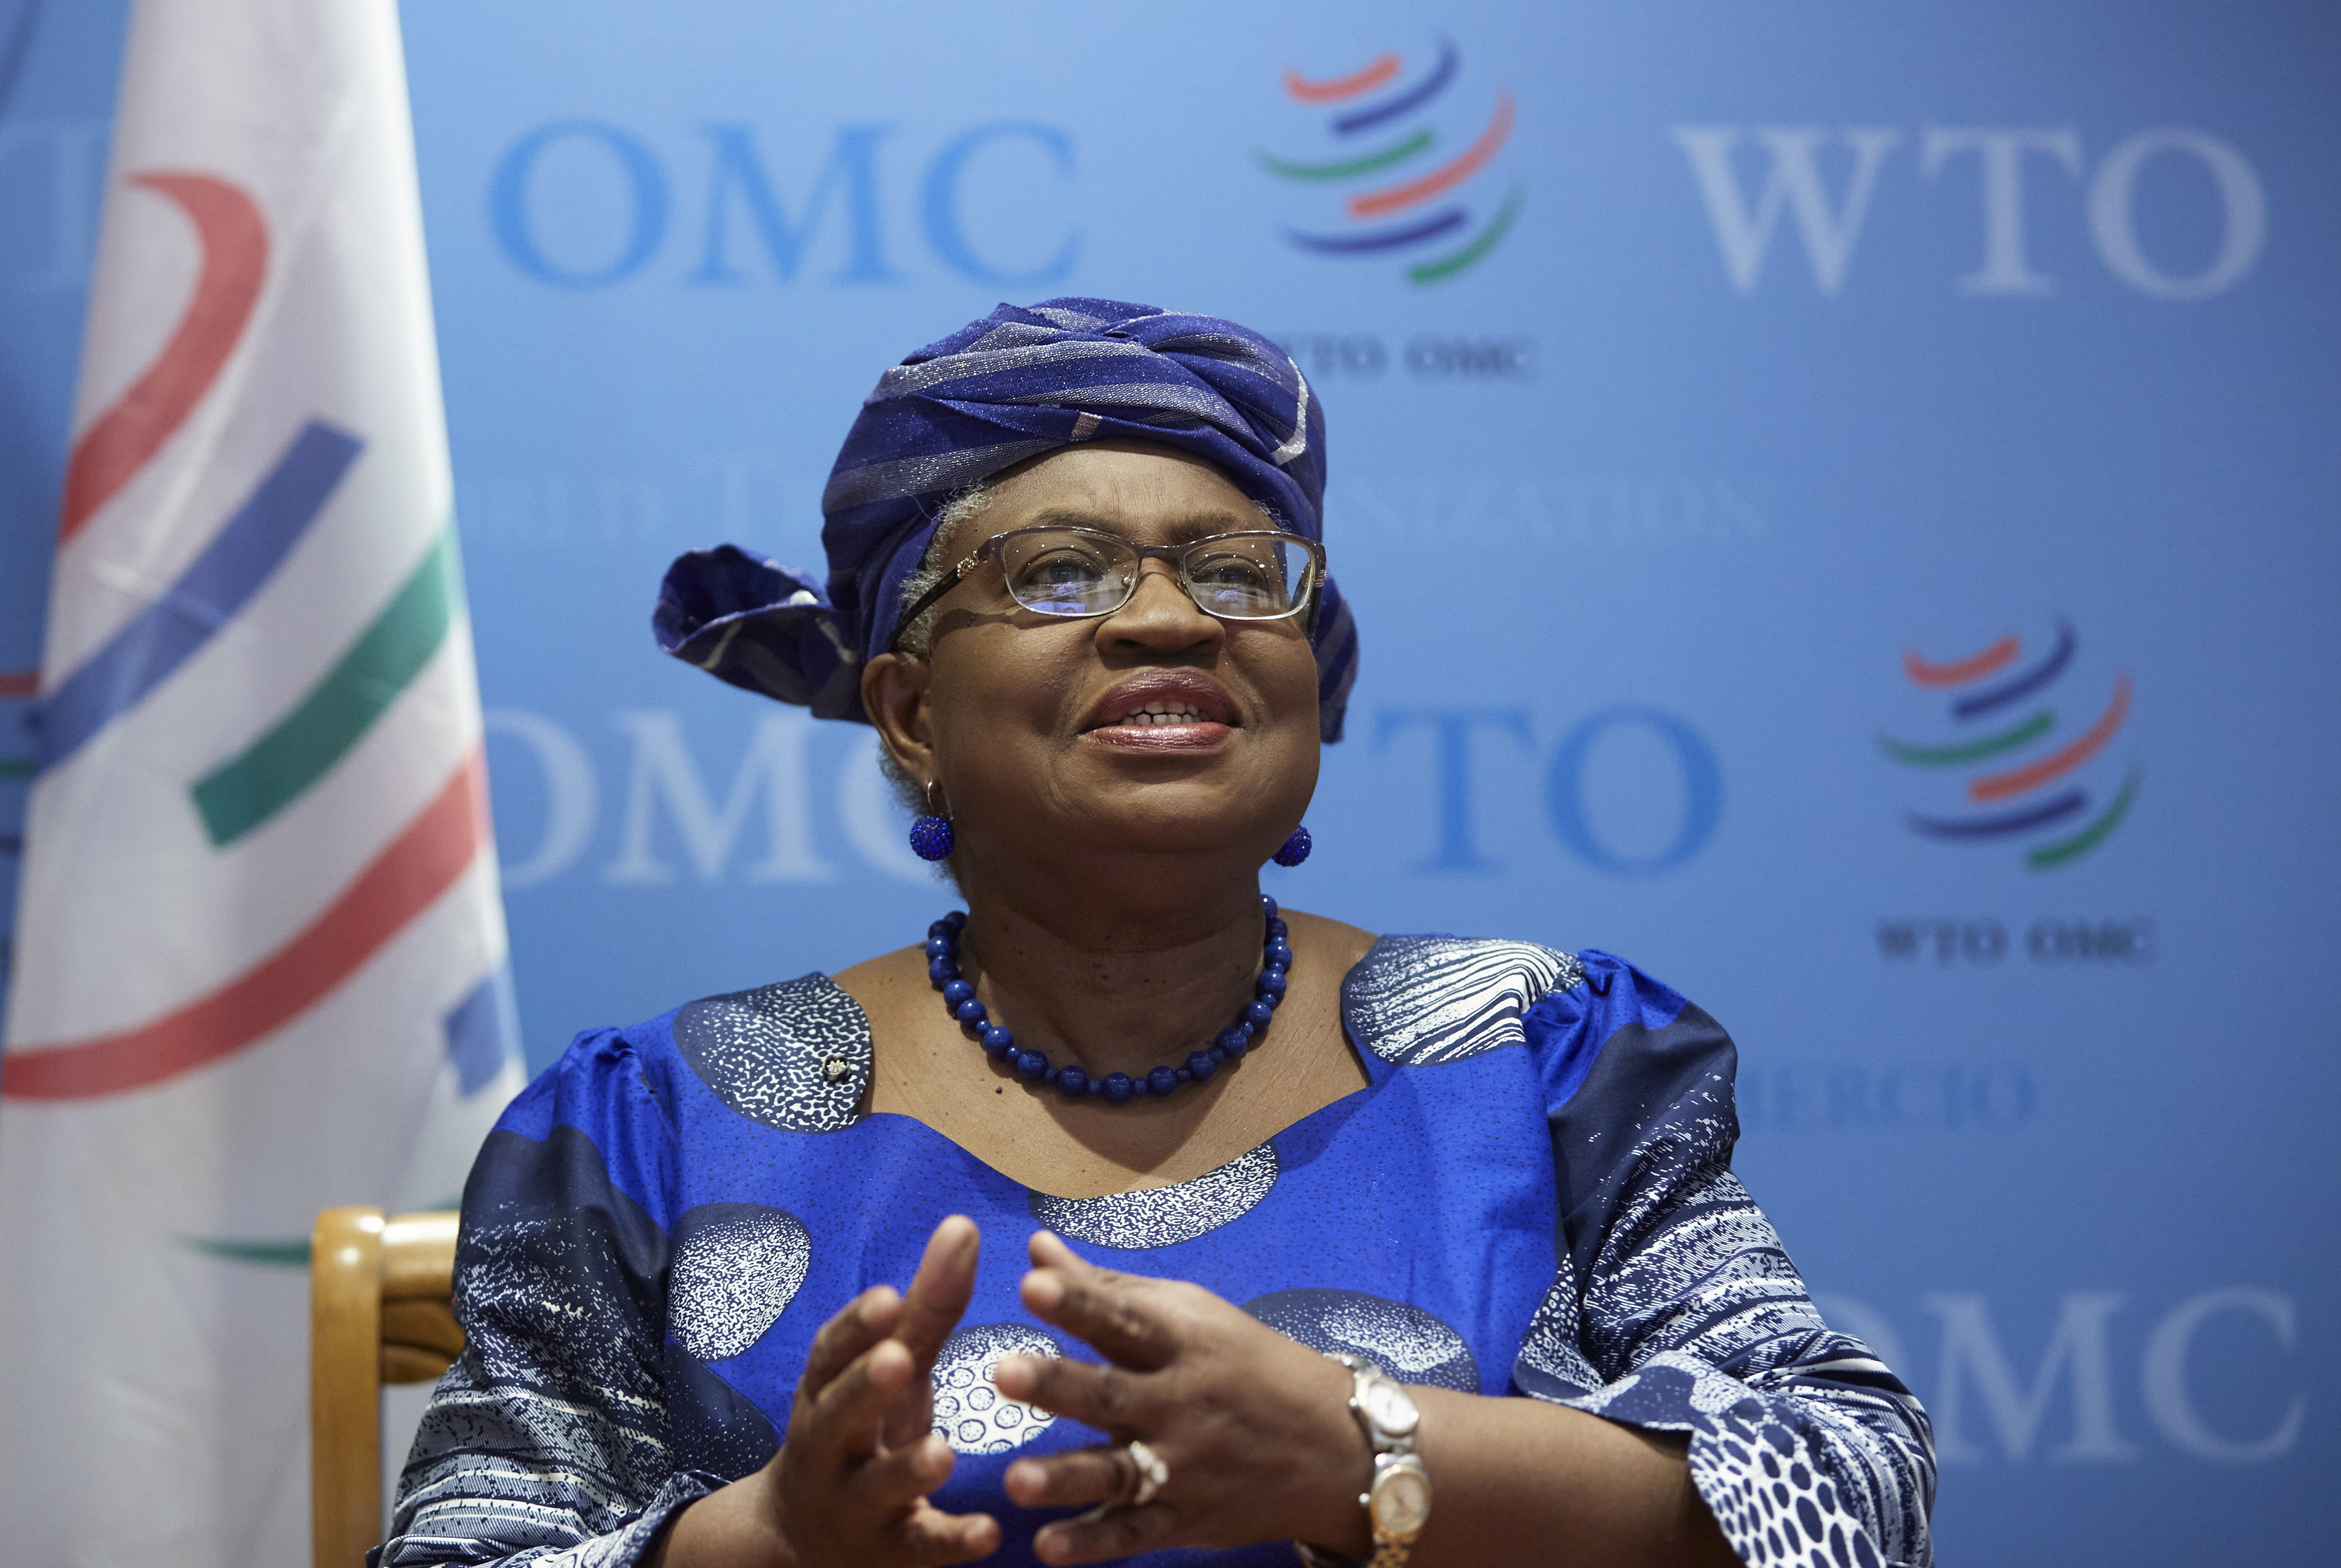 World Trade Organisation (WTO) Director-General Ngozi Okonjo-Iweala attends an interview with Reuters at the WTO headquarters in Geneva, Switzerland, April 12, 2021. REUTERS/Denis Balibouse - RC2HUM966XWH